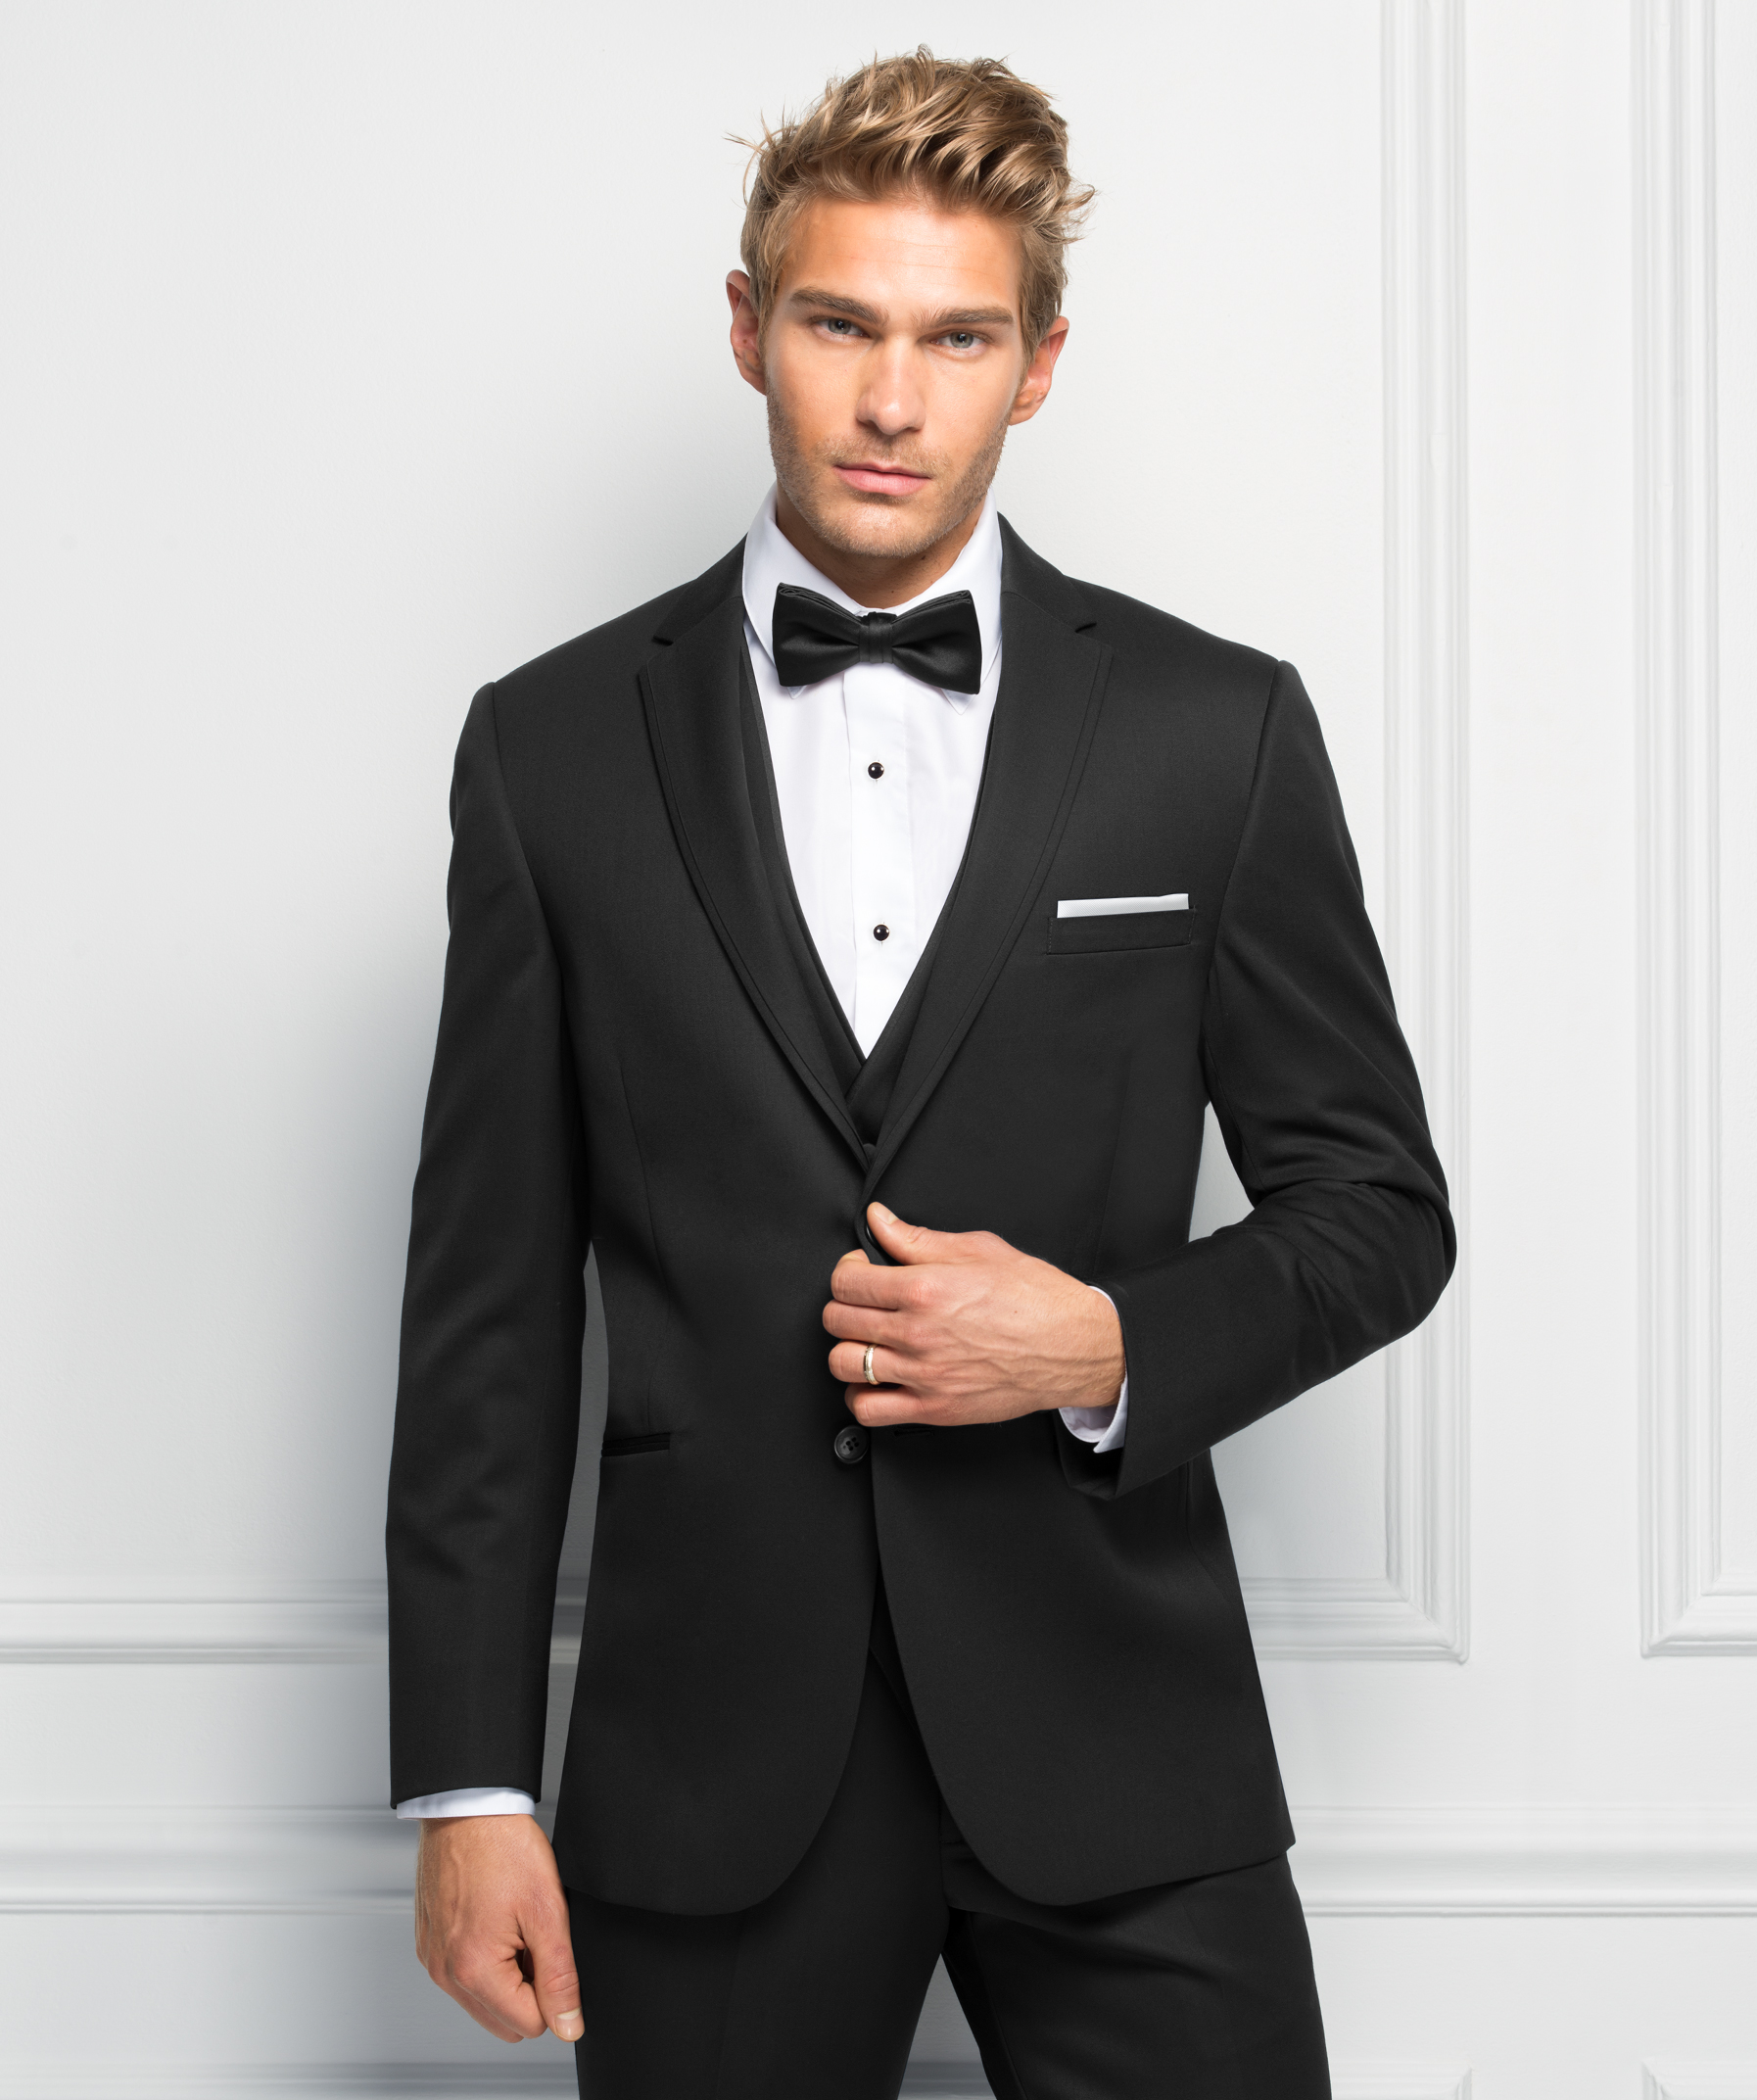 Michael Kors Black Wedding Suit